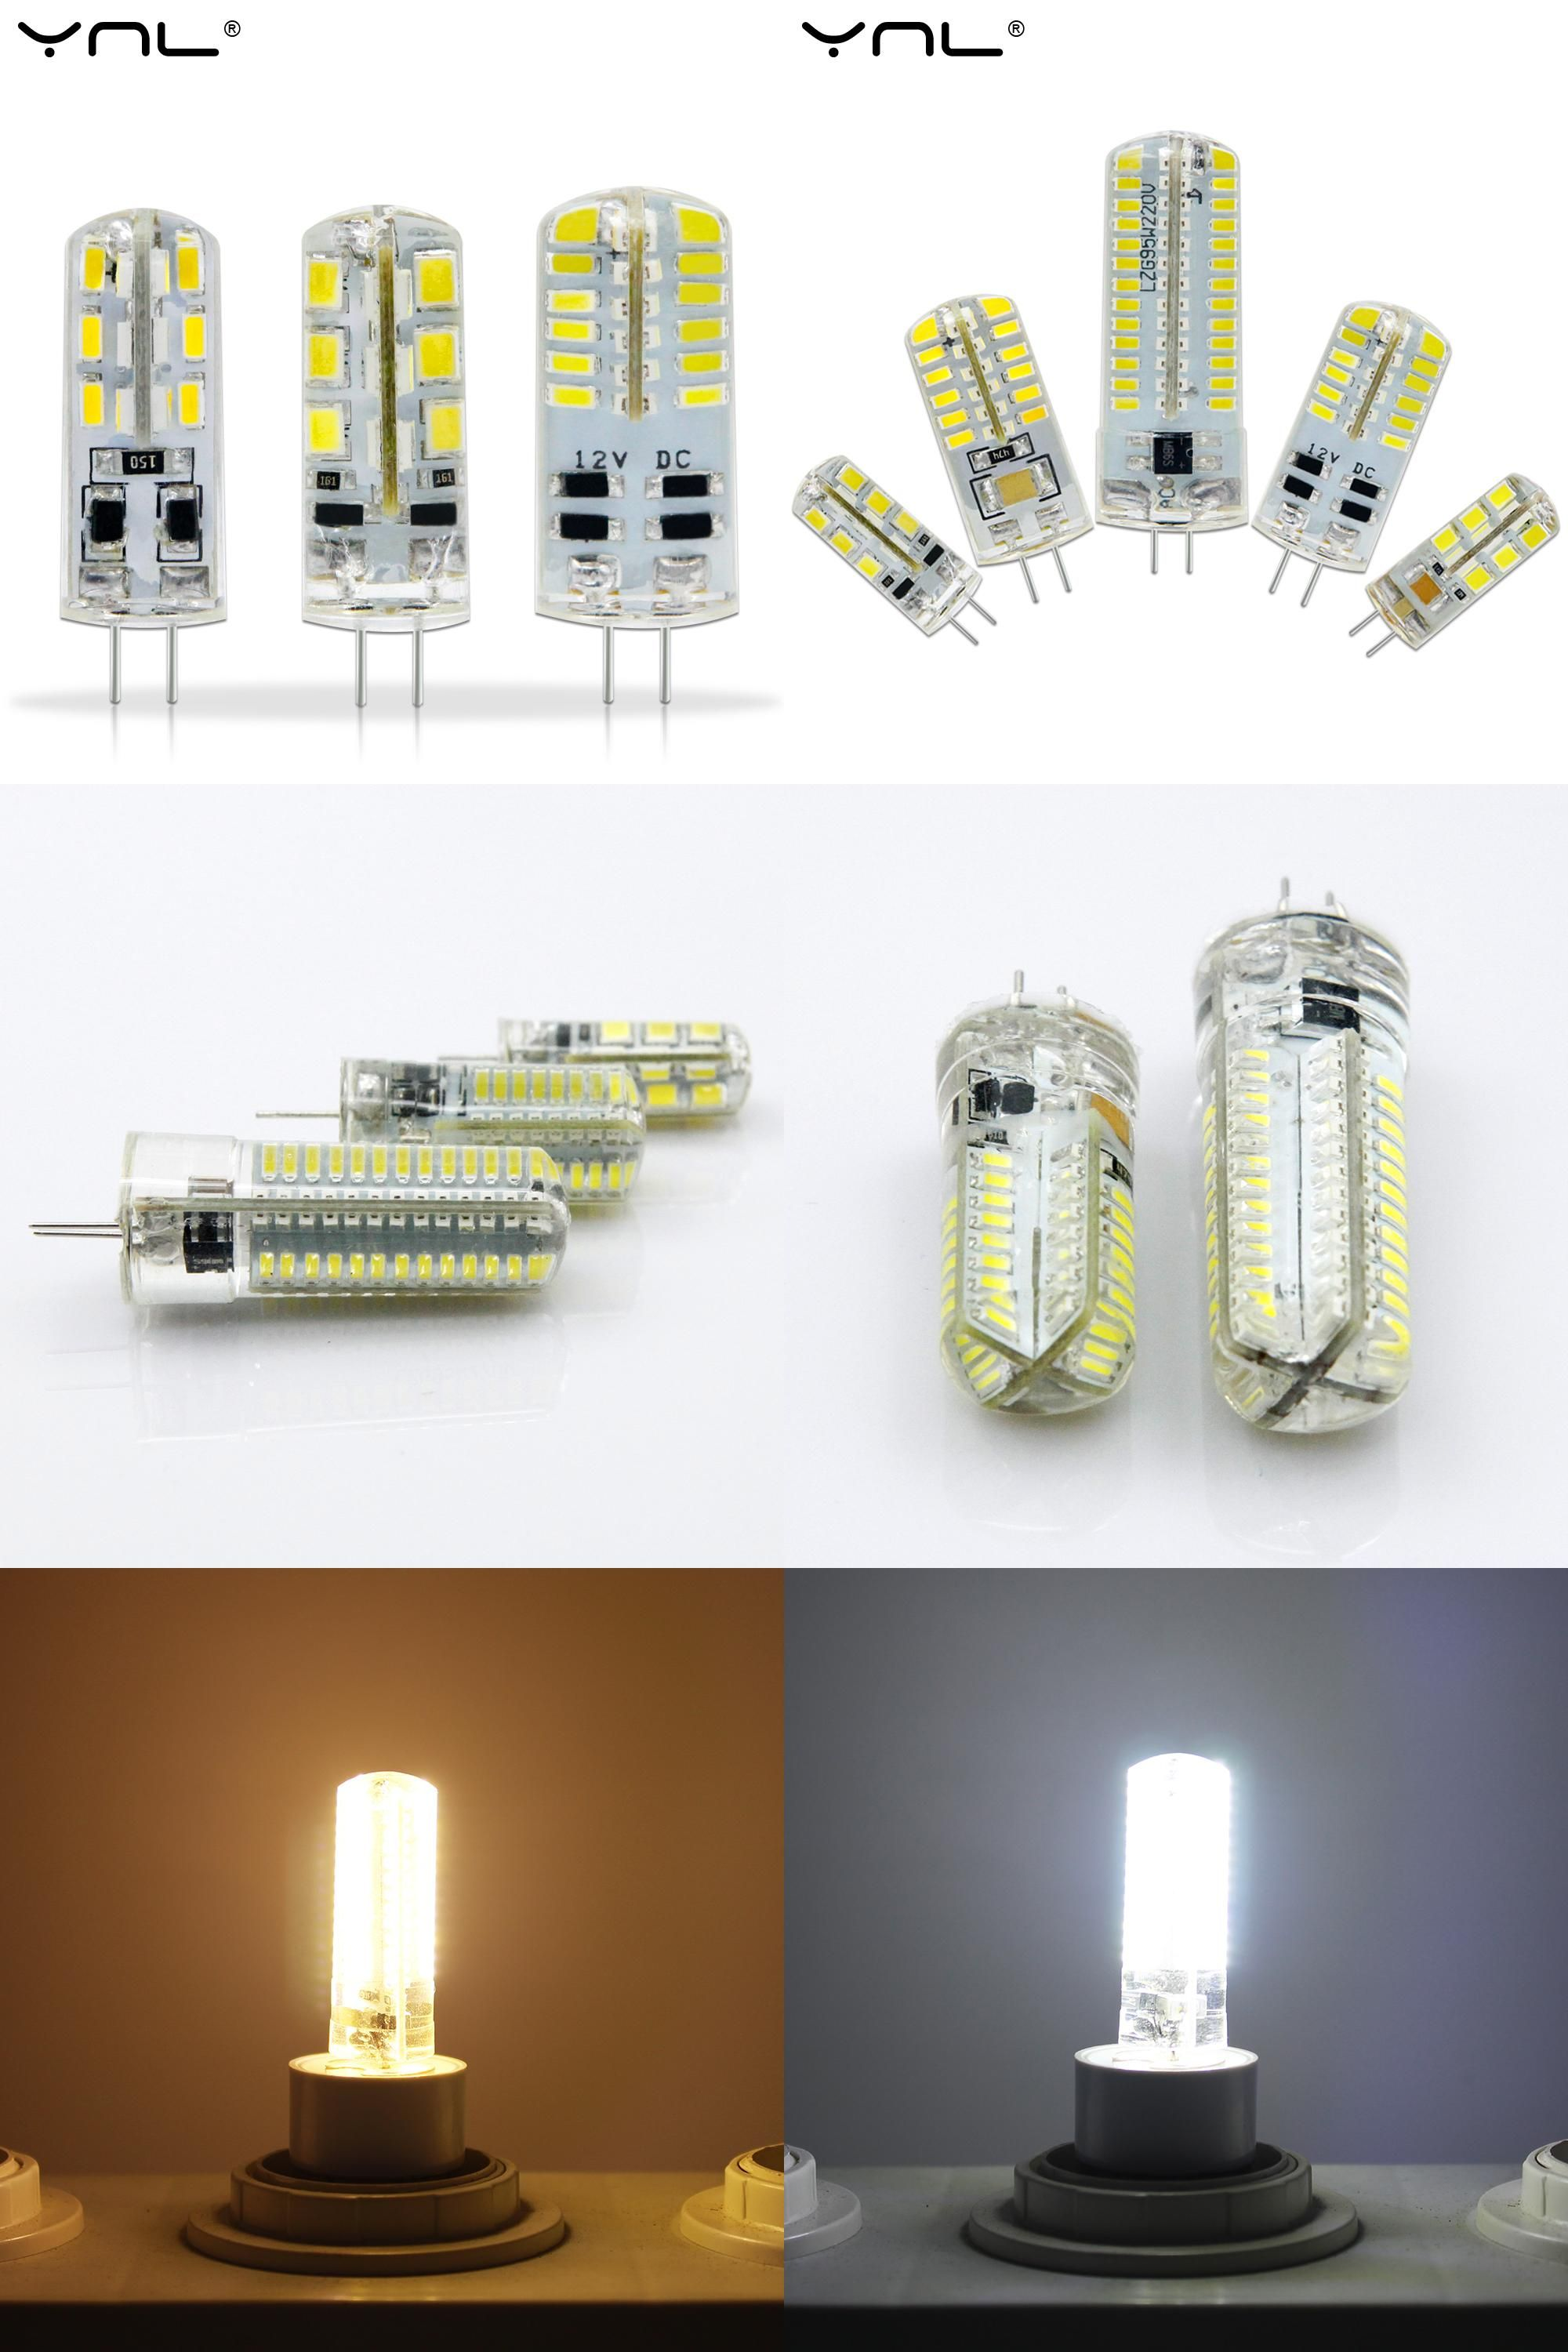 Visit To Buy Ynl Led G4 3014 Smd 3w 2w 1w Dc 12v G4 Led Lamp 20w Halogen Lamp G4 Led 12v Corn Bulb Silicone Lamps Cha Halogen Lamp Chandelier Lighting